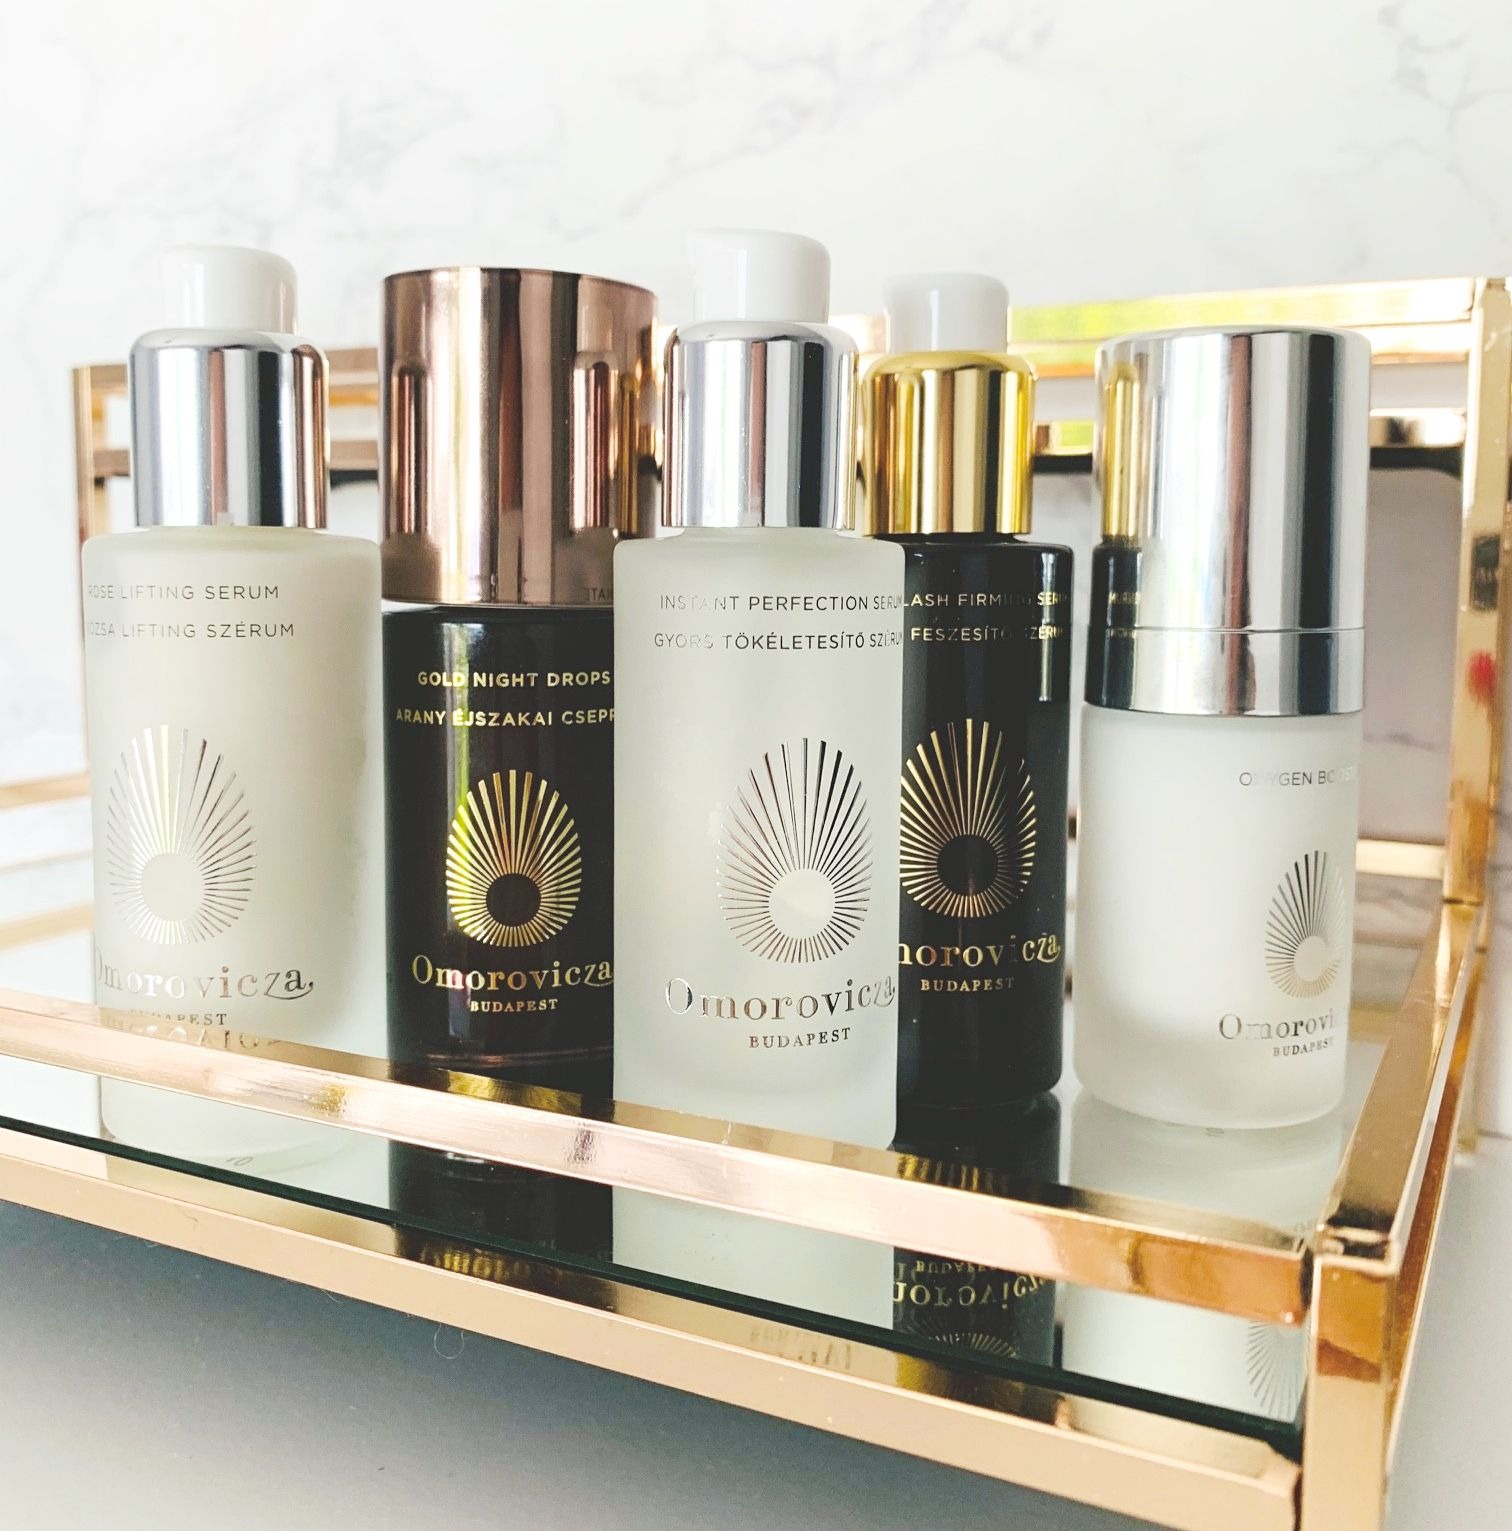 Which Omorovicza Serum is best for you?